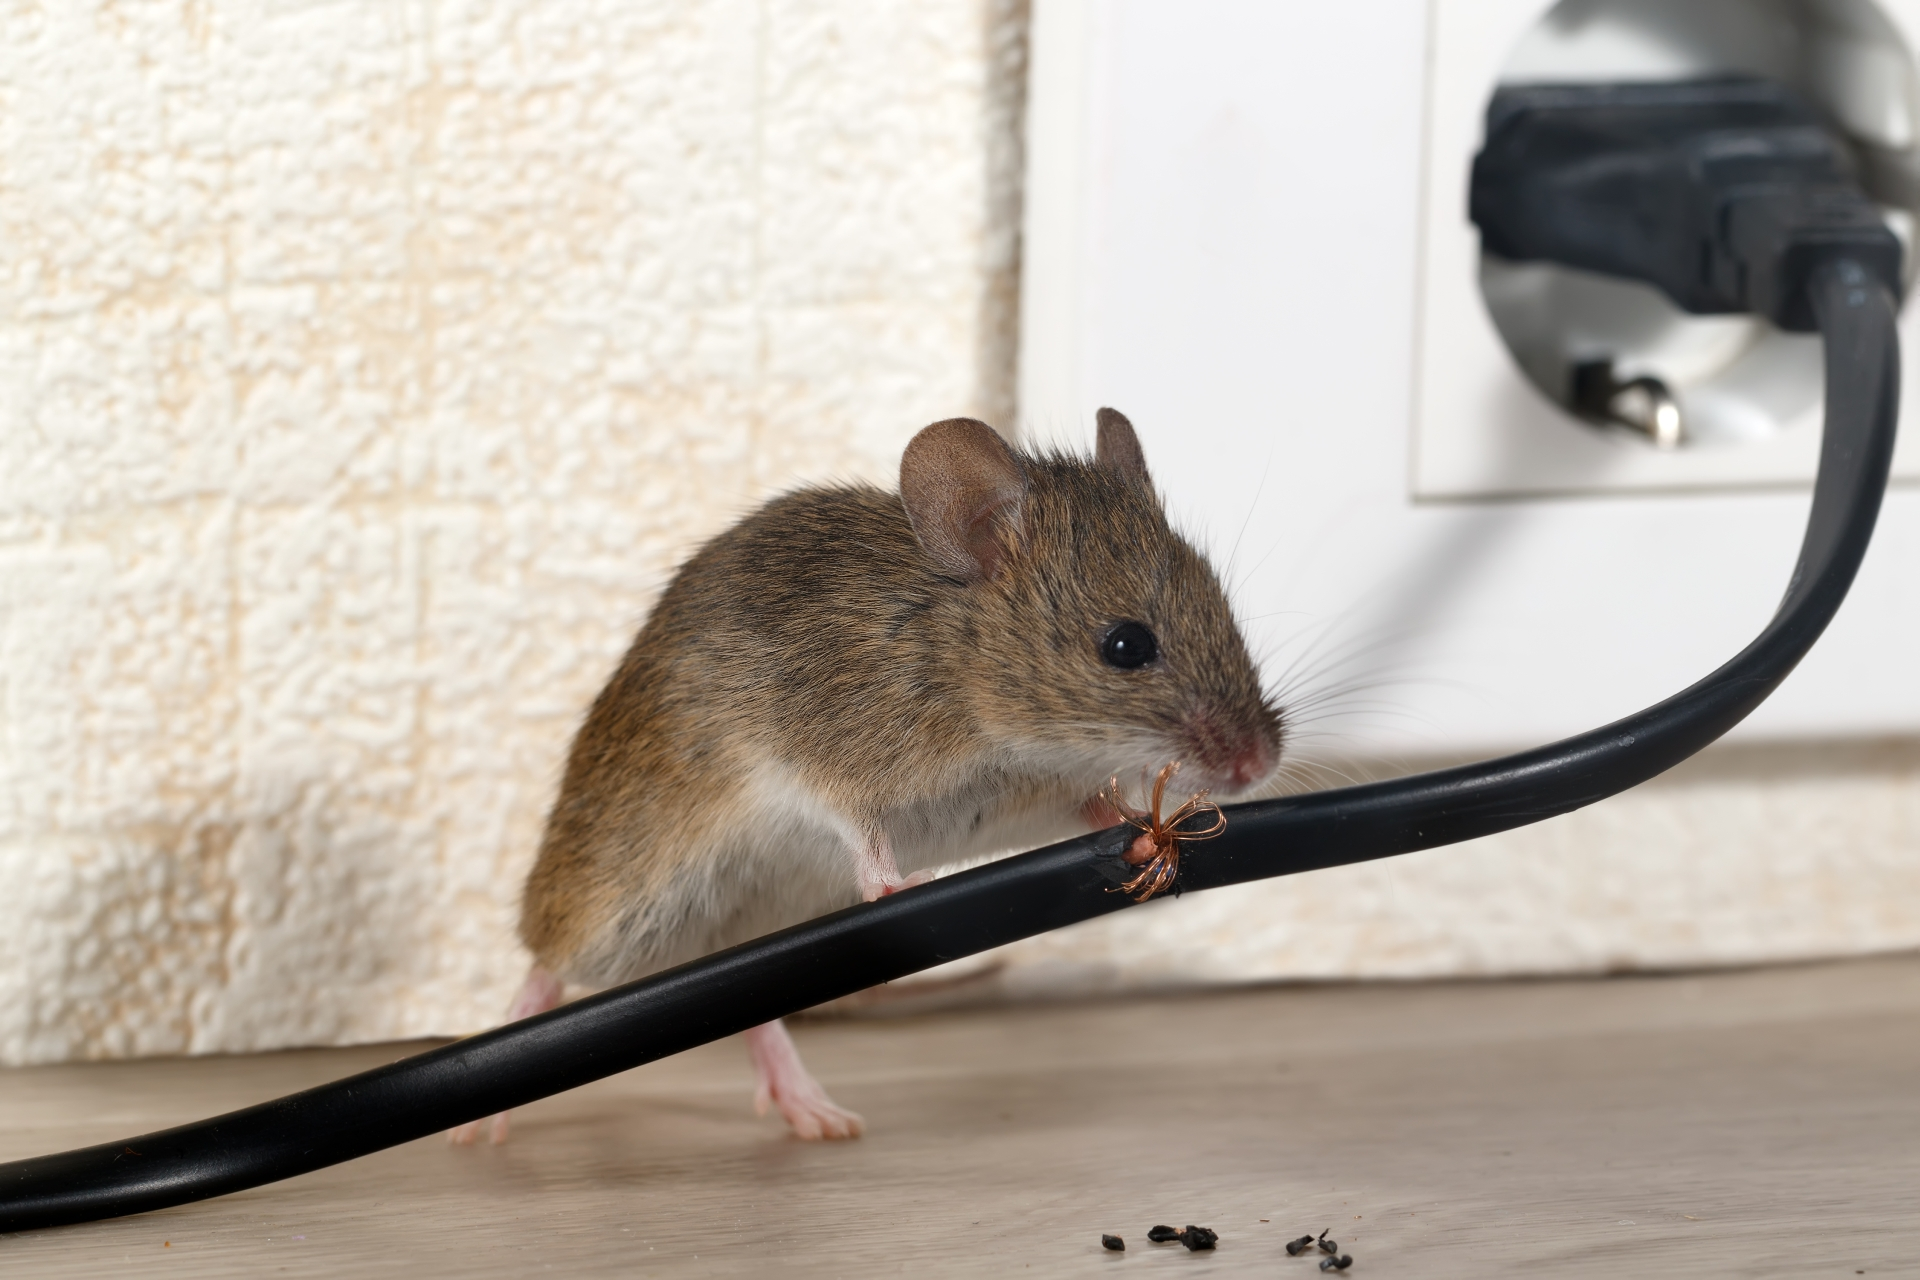 Mice Infestation, Pest Control in Chelsea, SW3. Call Now 020 8166 9746